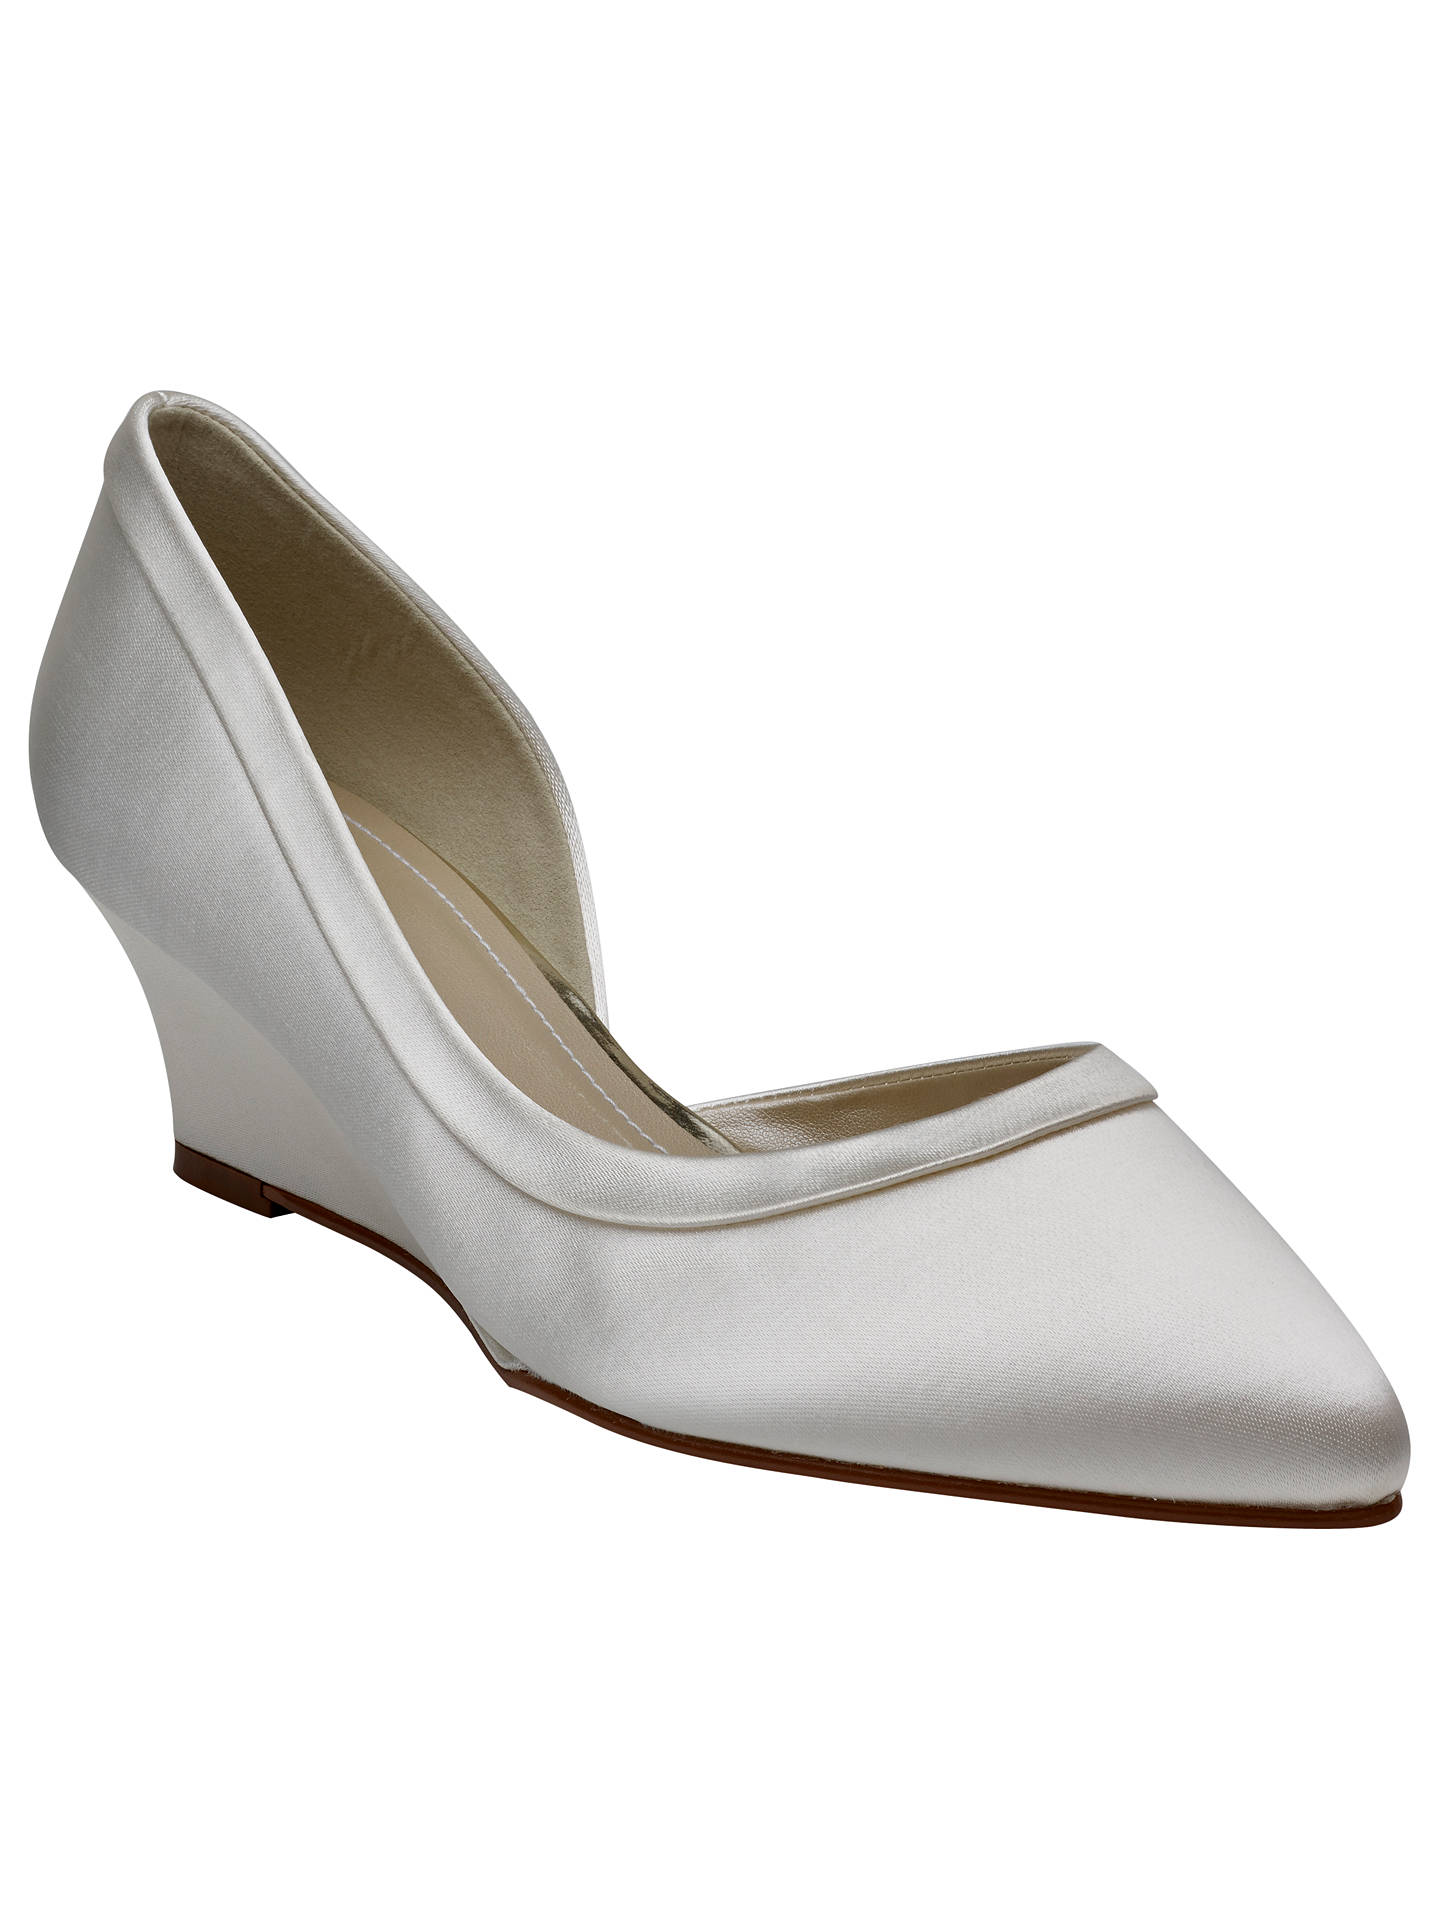 Buy Rainbow Club Edna Wedge Heel Court Shoes, Ivory, 6.5 Online at johnlewis.com